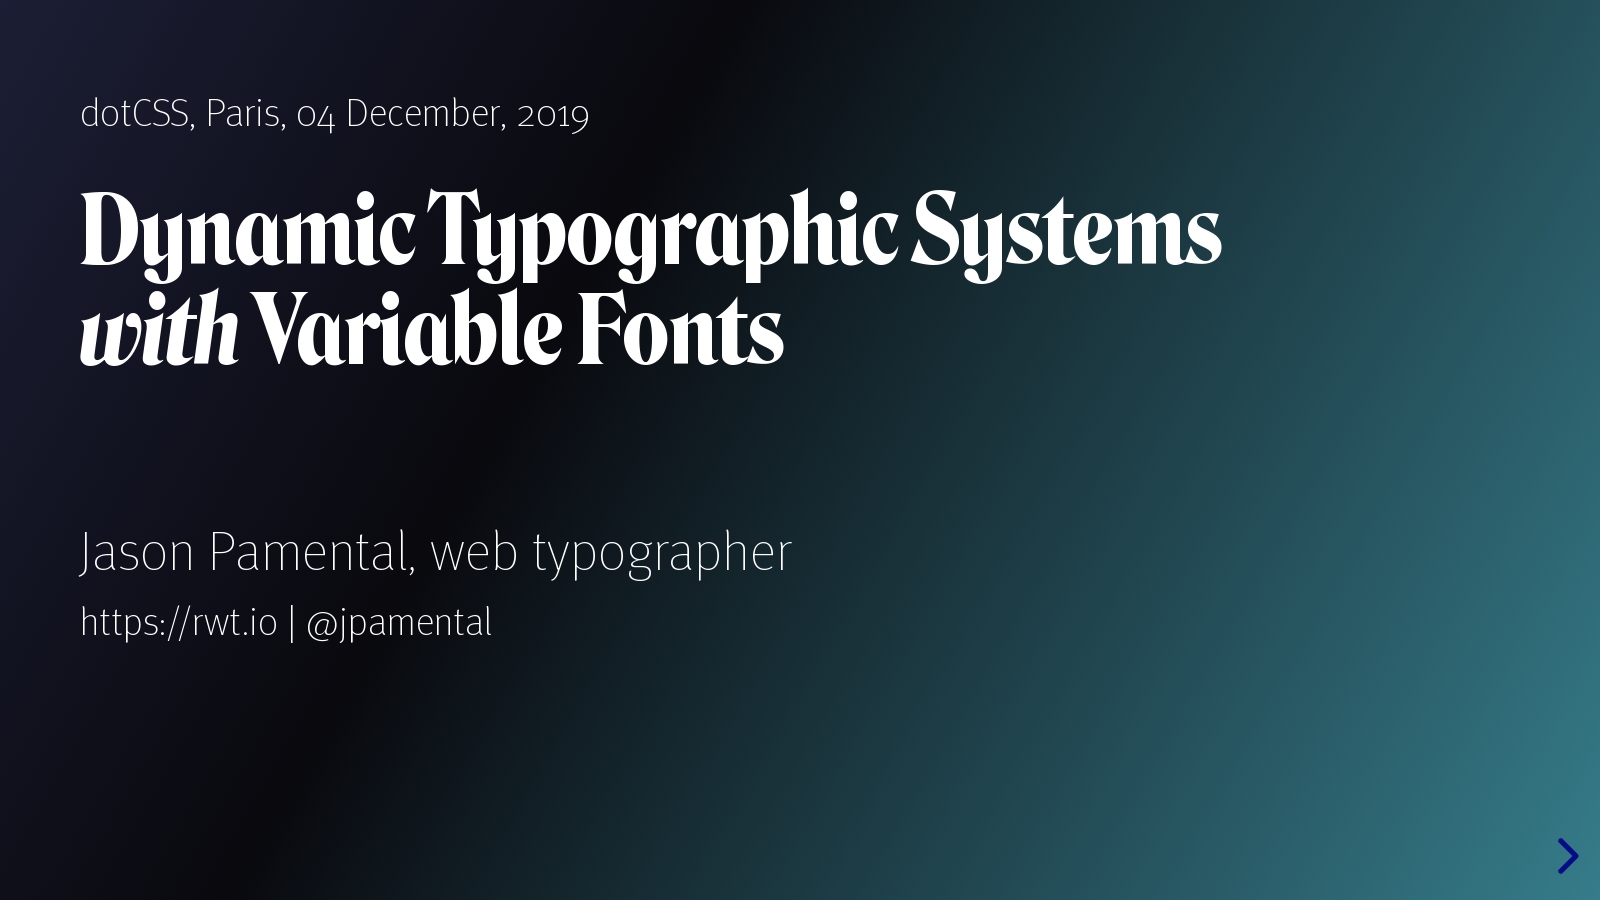 Dynamic Typographic Systems with Variable Fonts